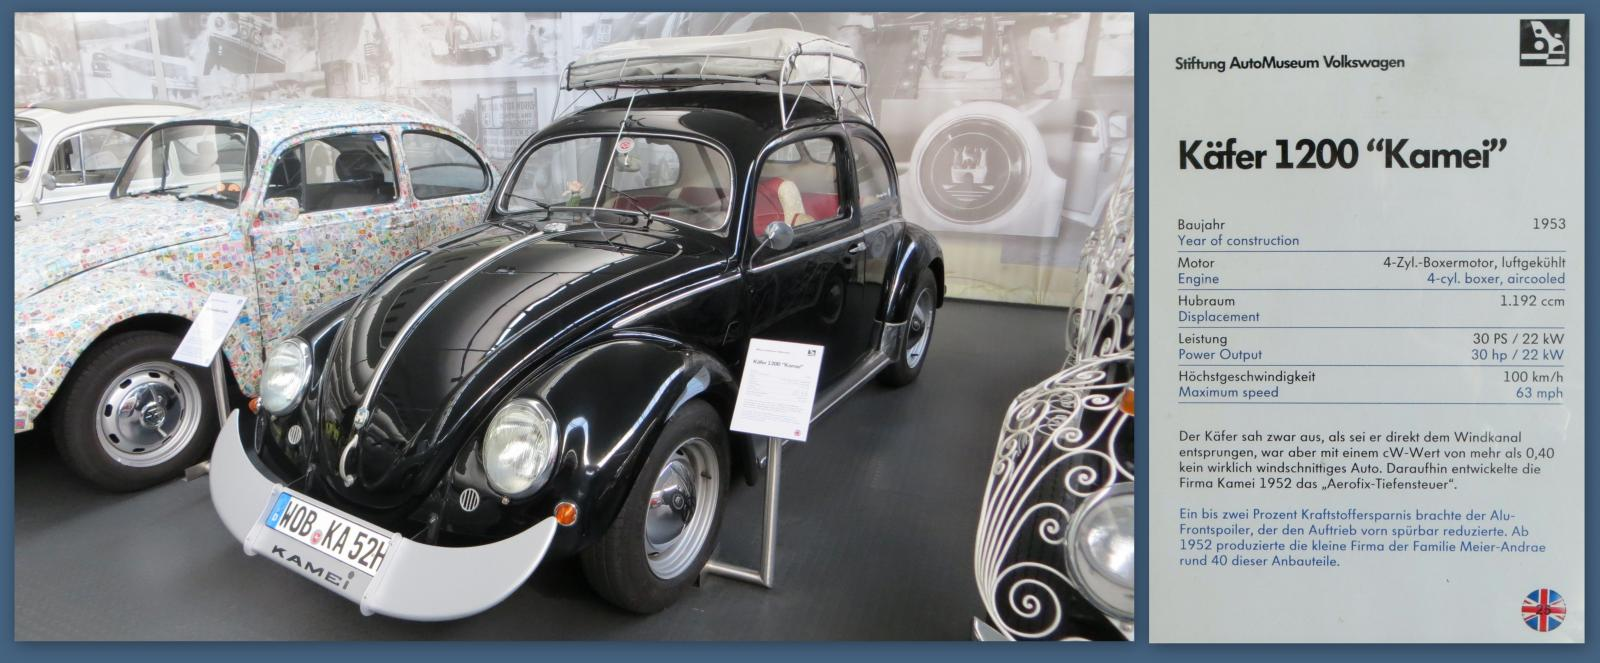 """1953 """"Kamei"""" Bug at the Stiftung AutoMuseum Volkswagen in Wolfsburg, Germany"""